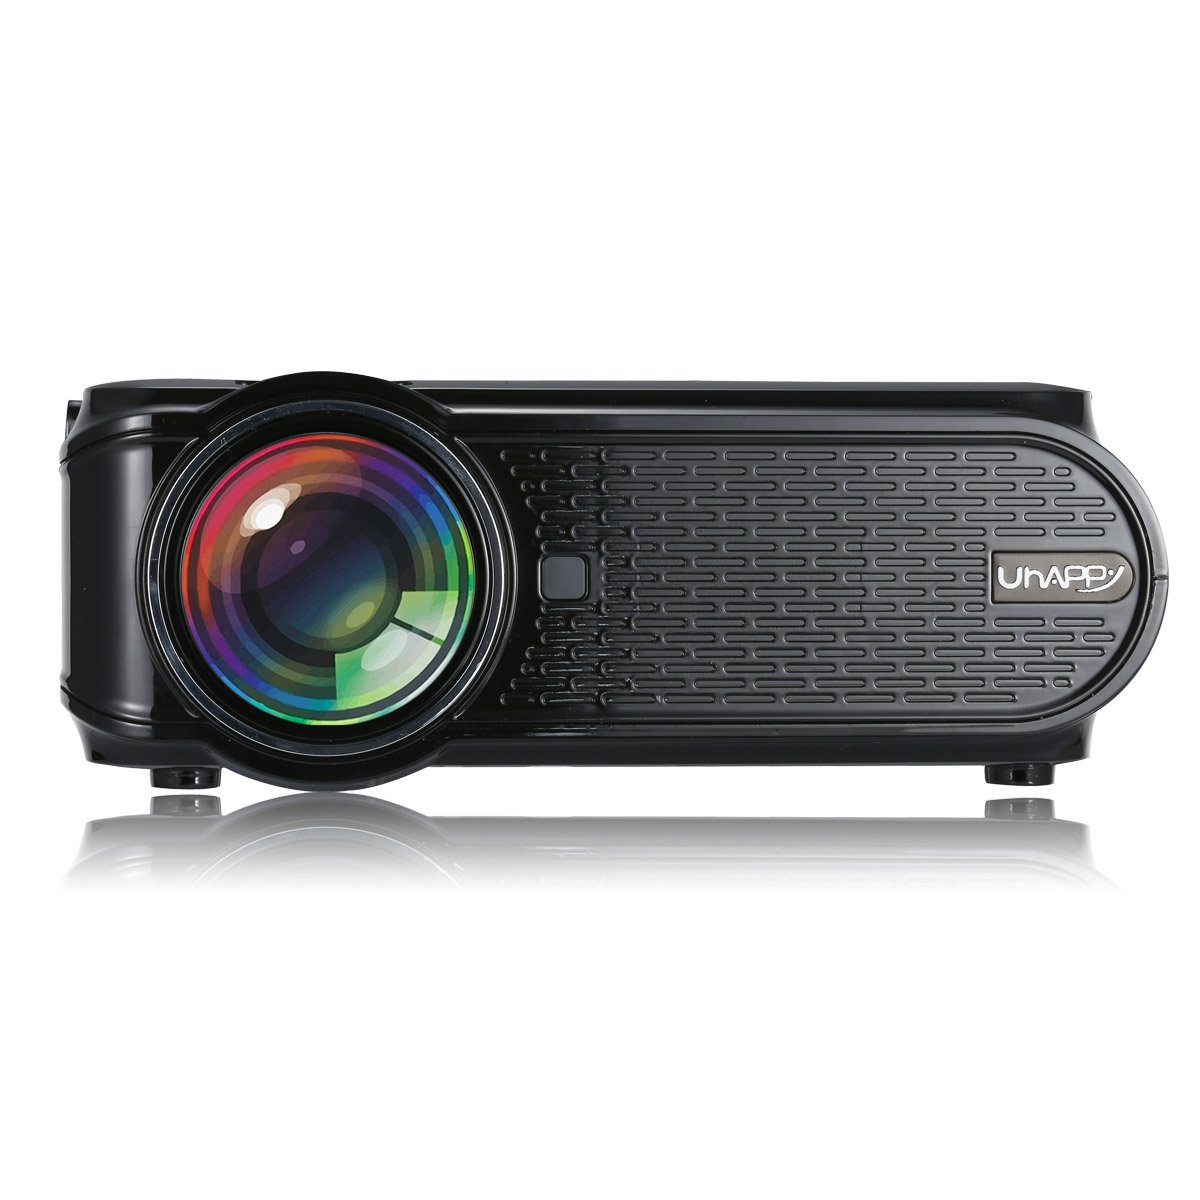 Mini Projector,CamKing U90 1500 Lumens 1080P Video Projector for Home Cinema by CamKing